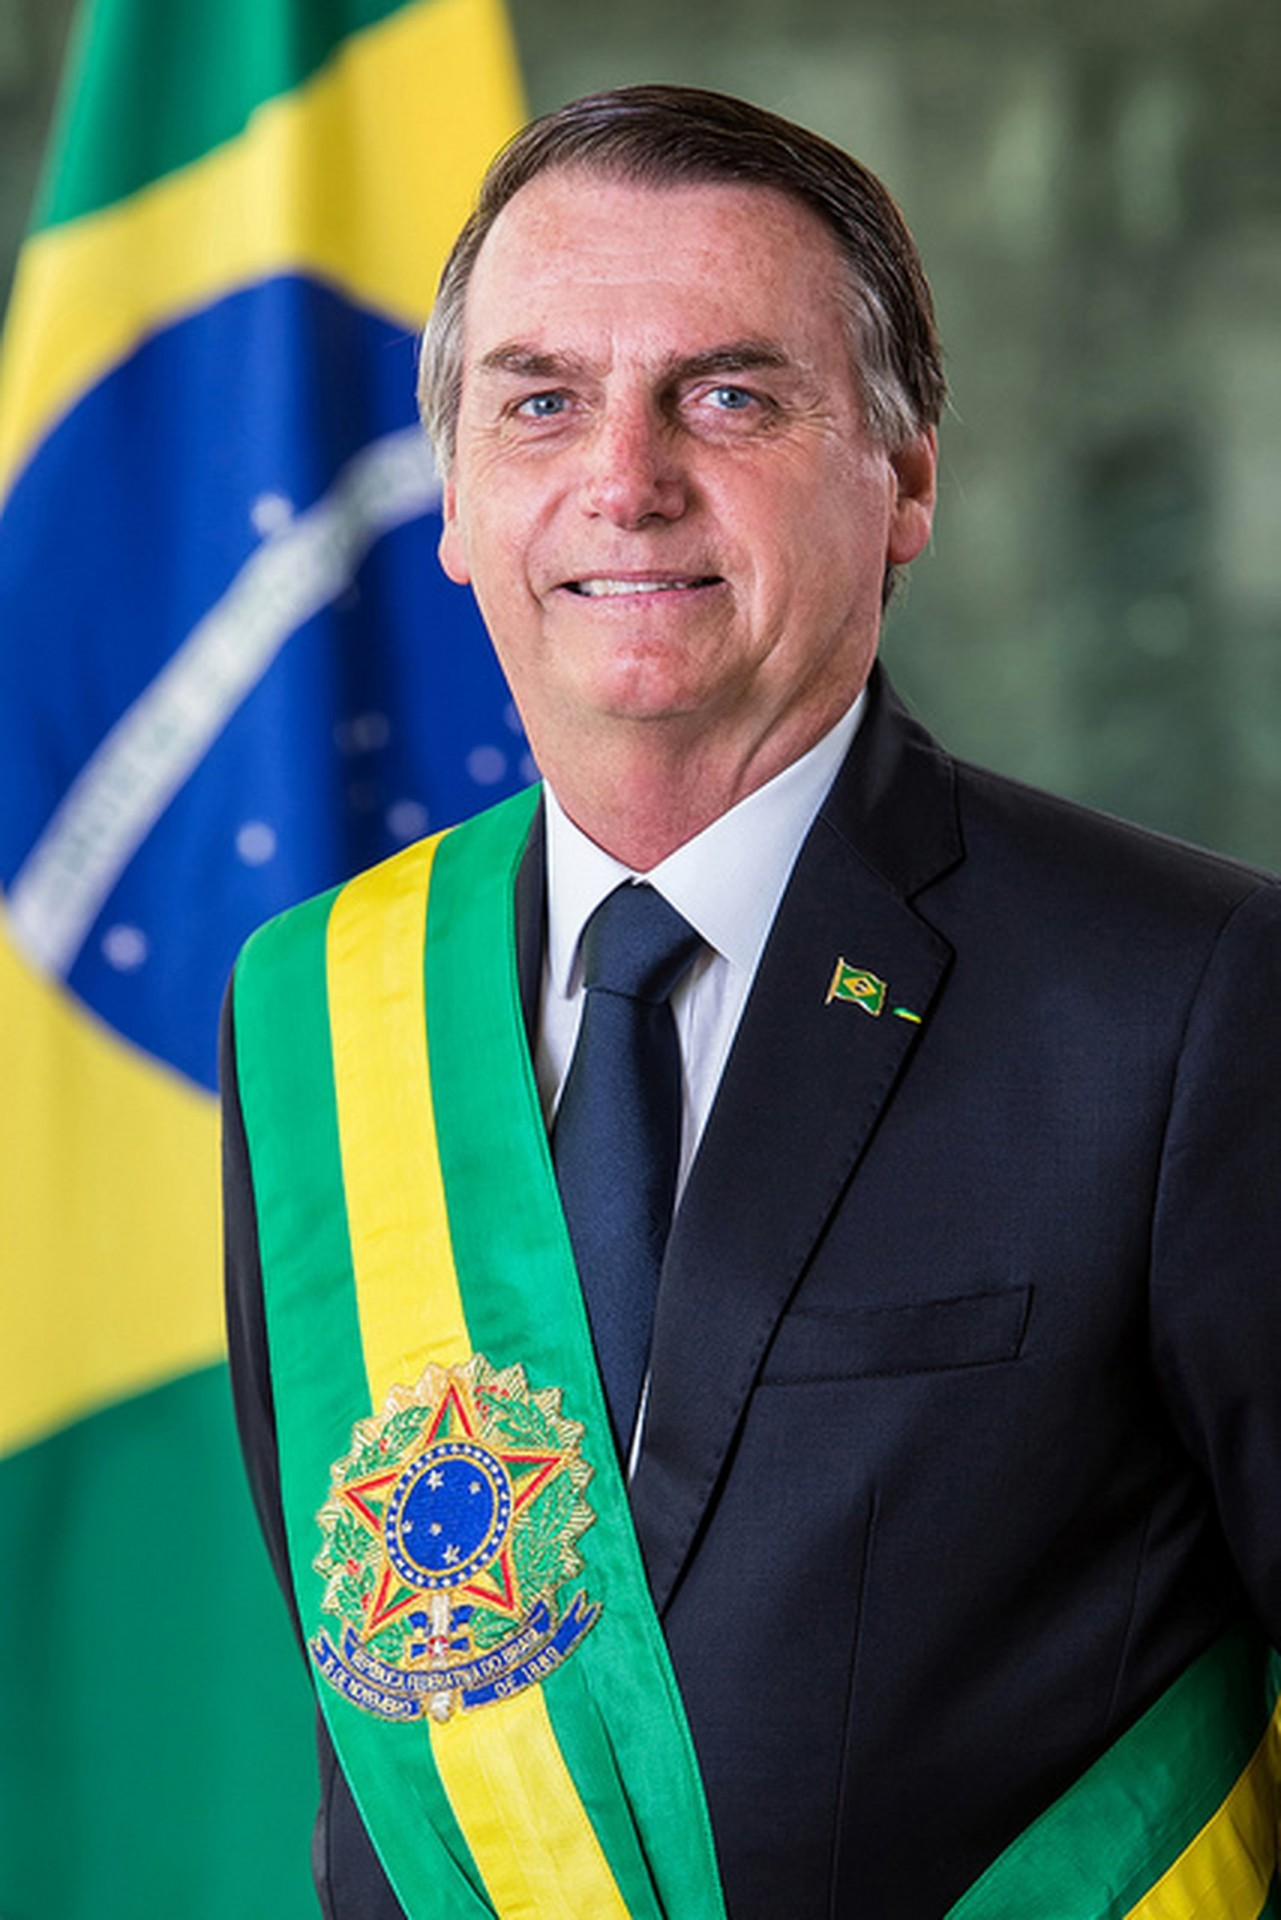 Bolsonaro's grin (Official portrait by Alan Santos)